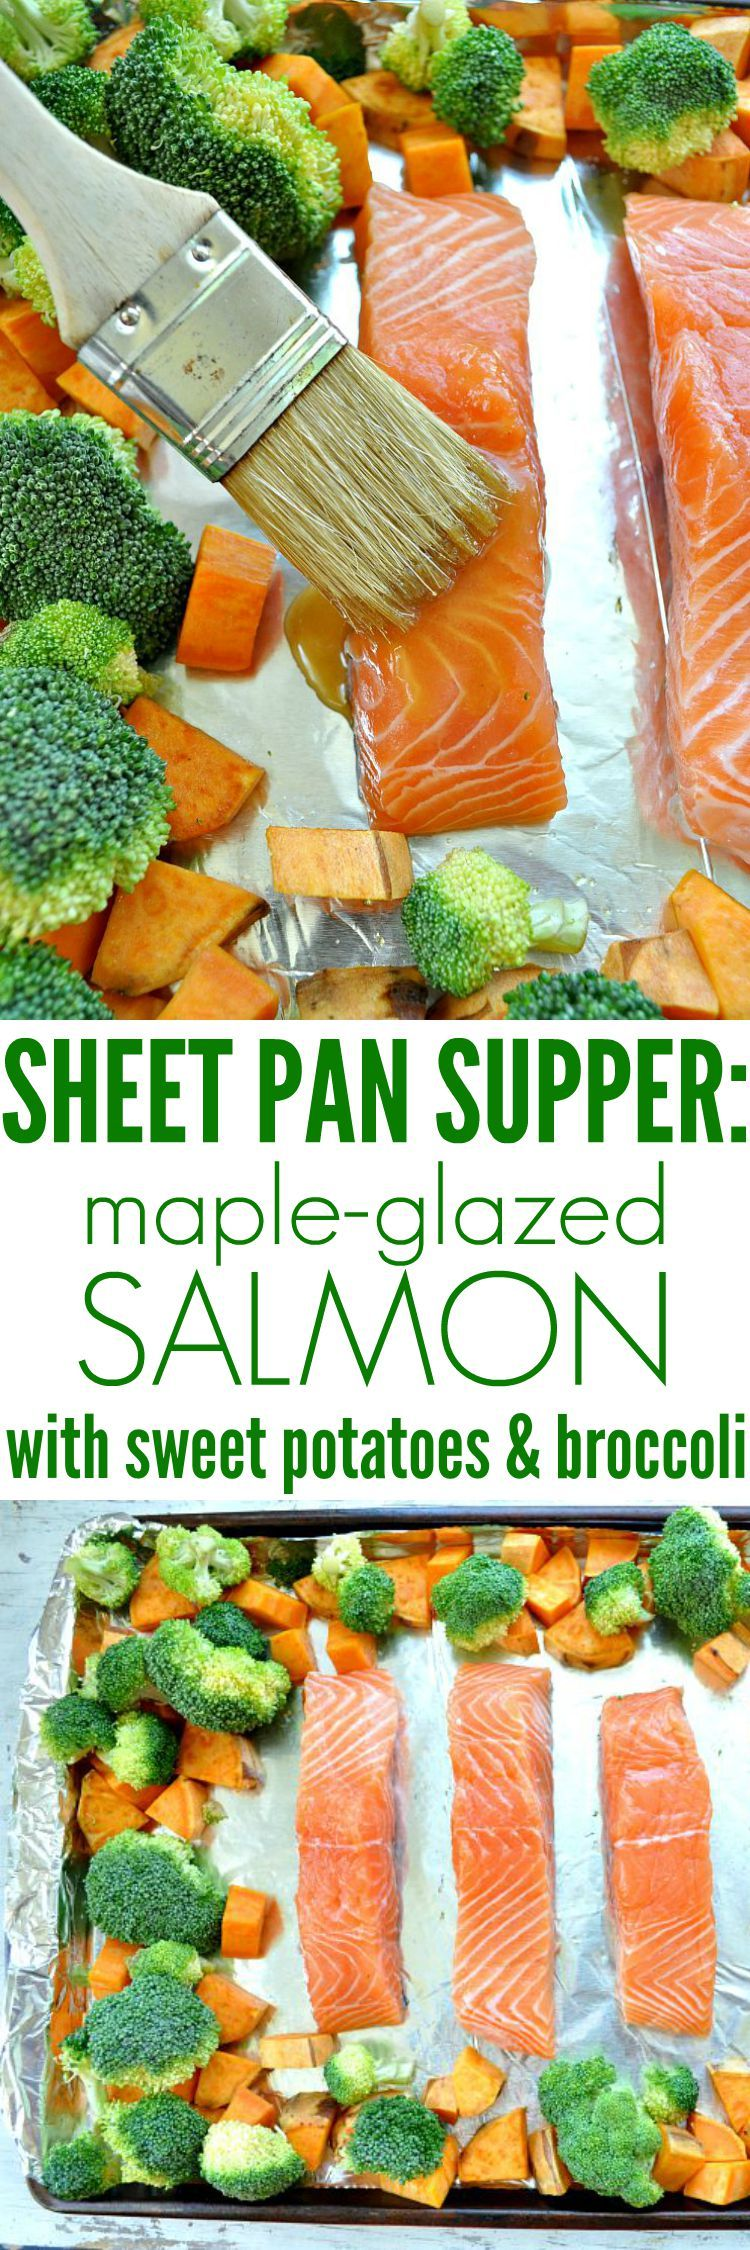 With This Easy Sheet Pan Supper The Maple Glazed Salmon